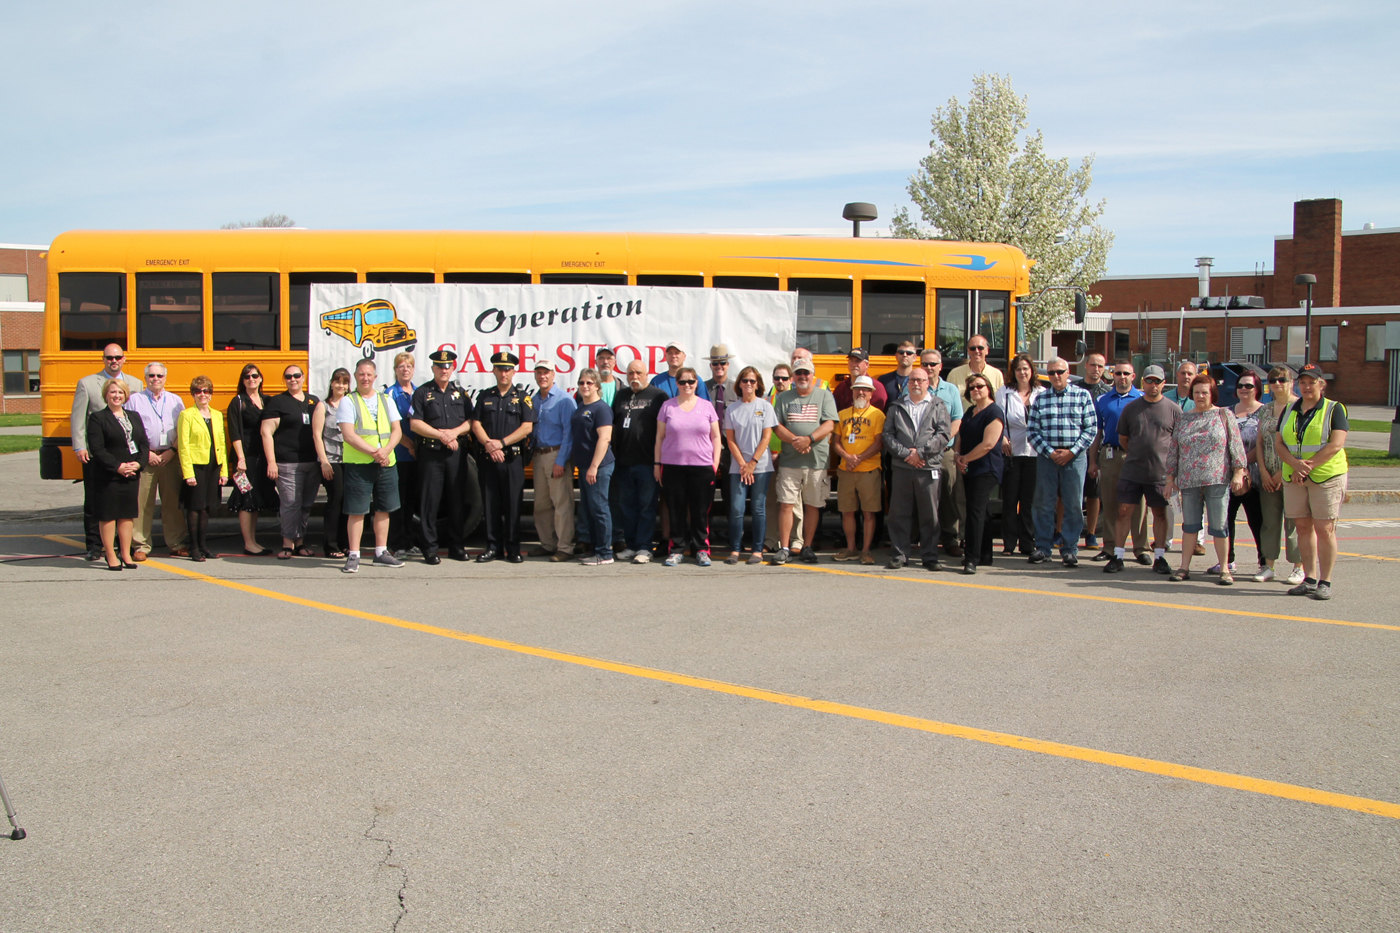 Local authorities, as well as elected leaders, joined with Spencerport Central School District for Operation Safe Stop on April 27. Provided photo